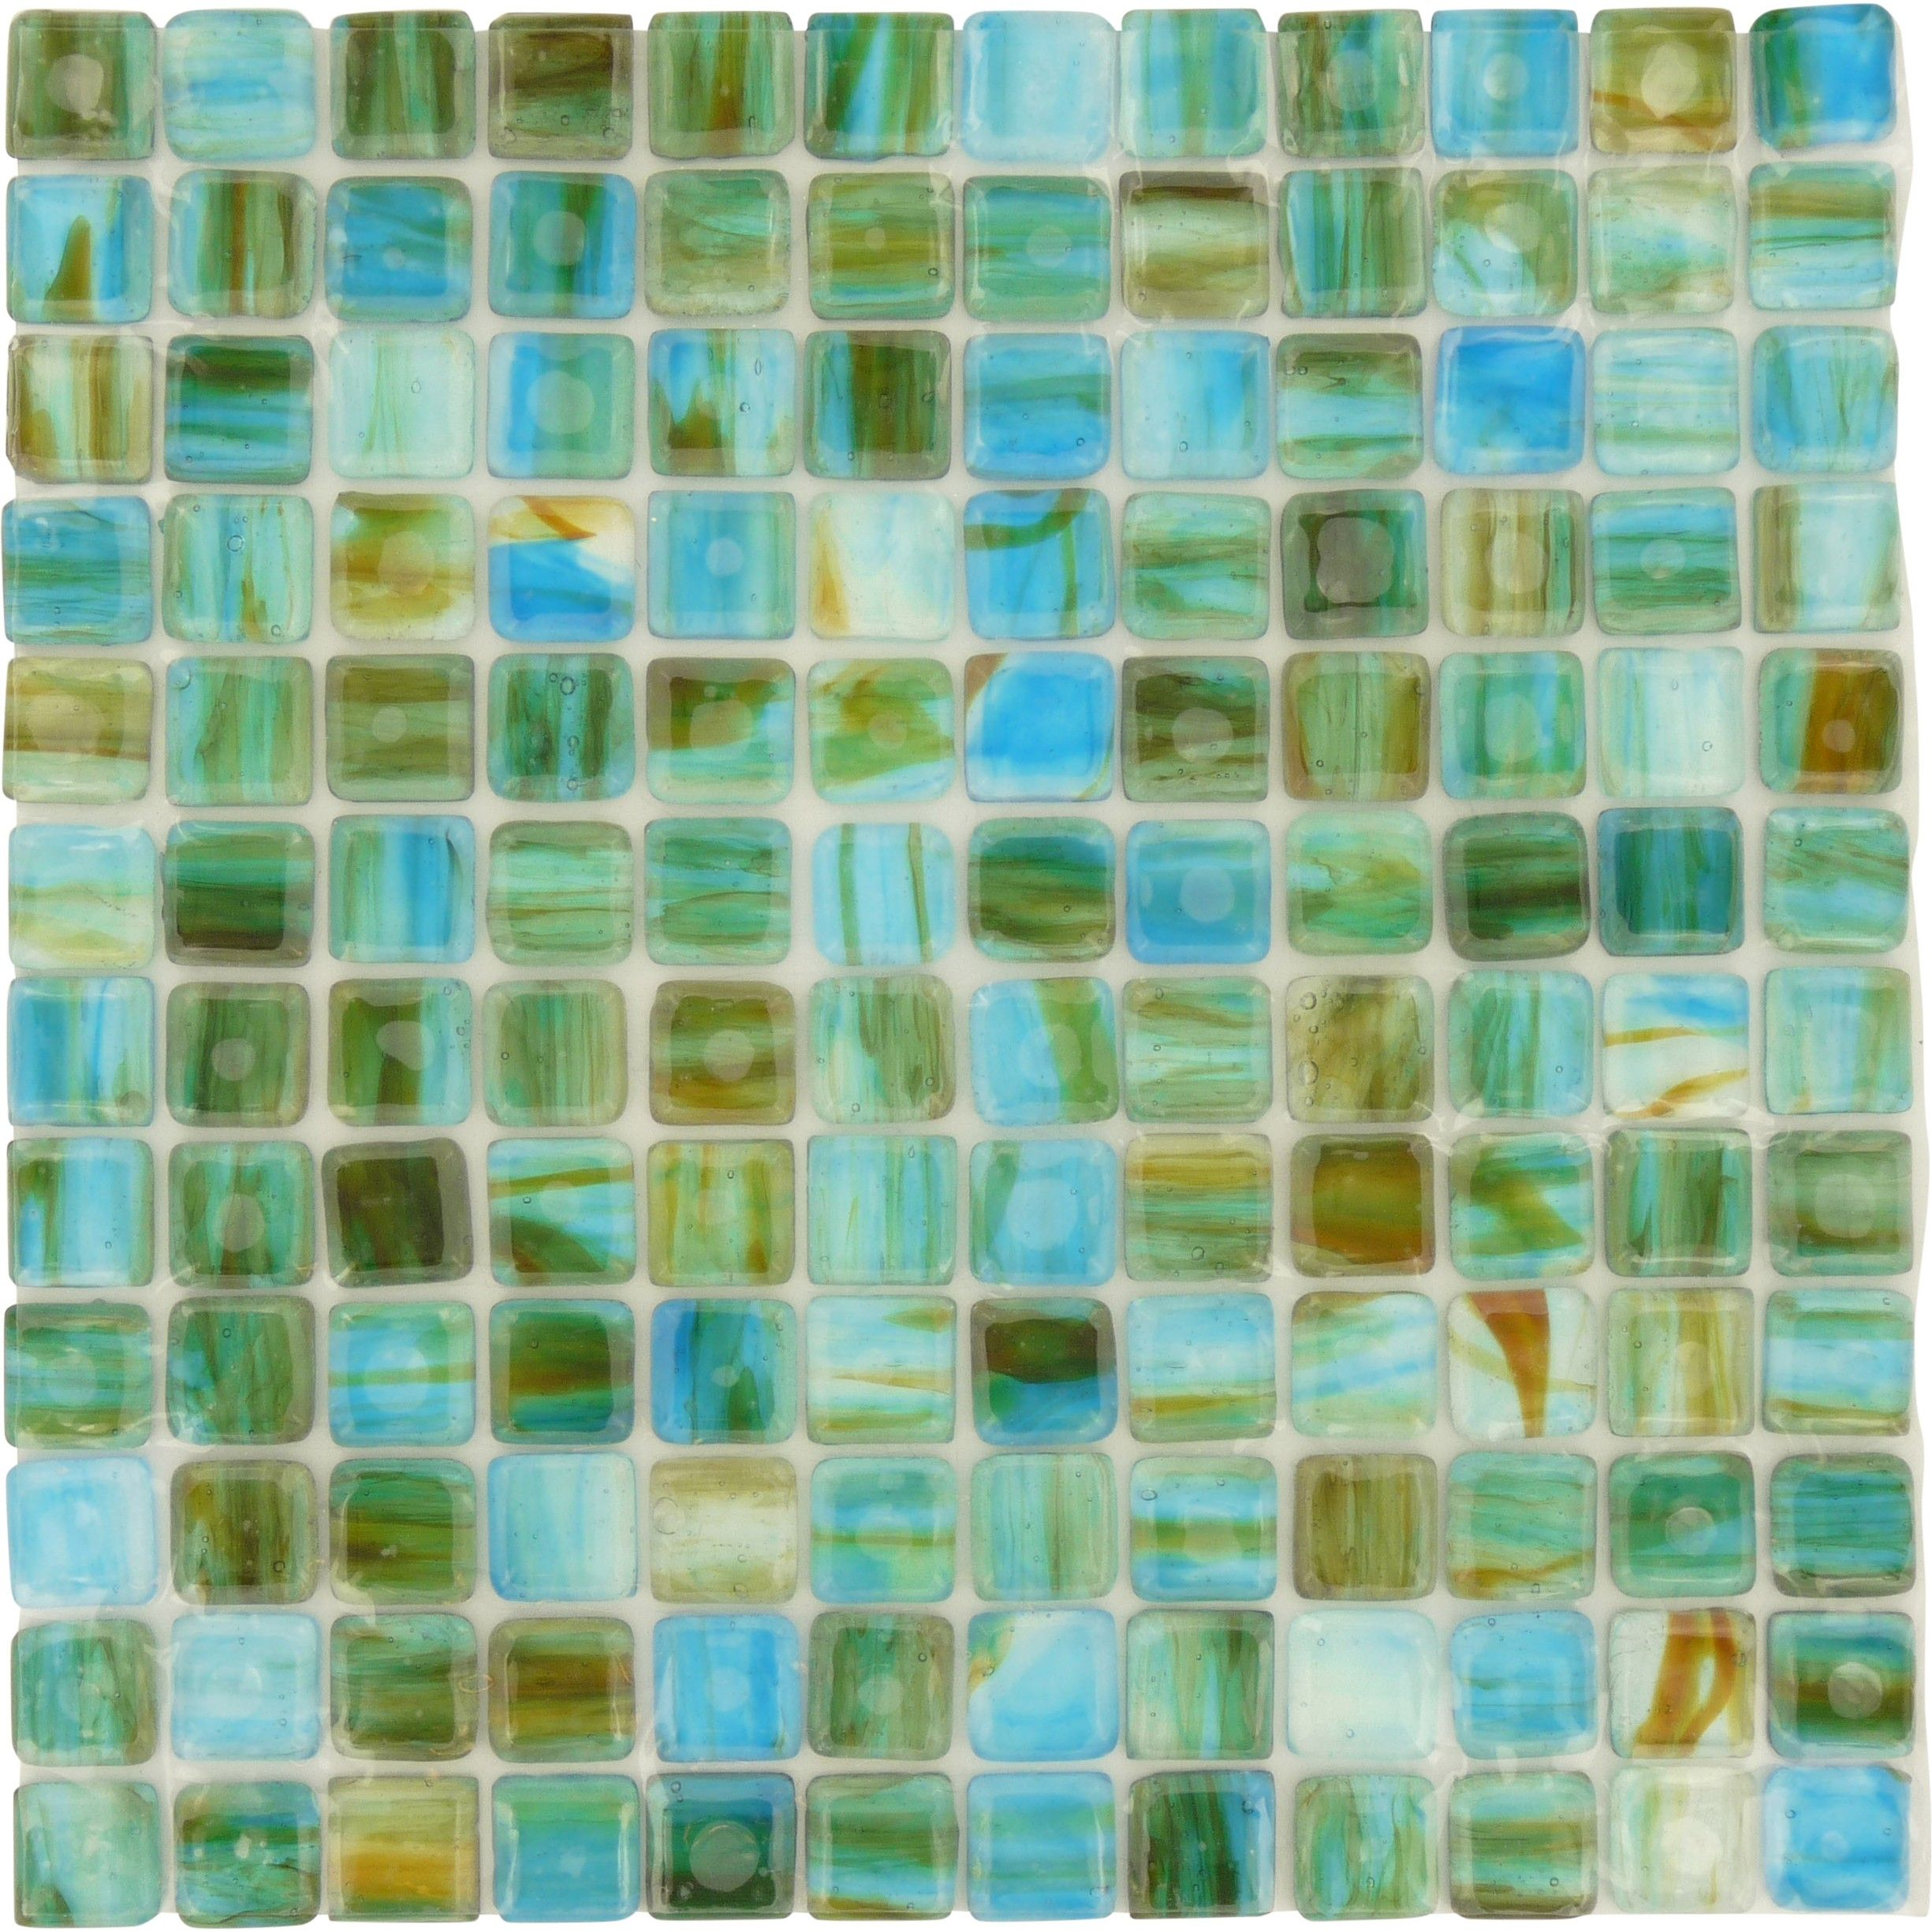 Turquoise 1 X 1 Blue Glossy Glass Tiles Sea Glass Tile Bathroom Colors Blue Glass Tile